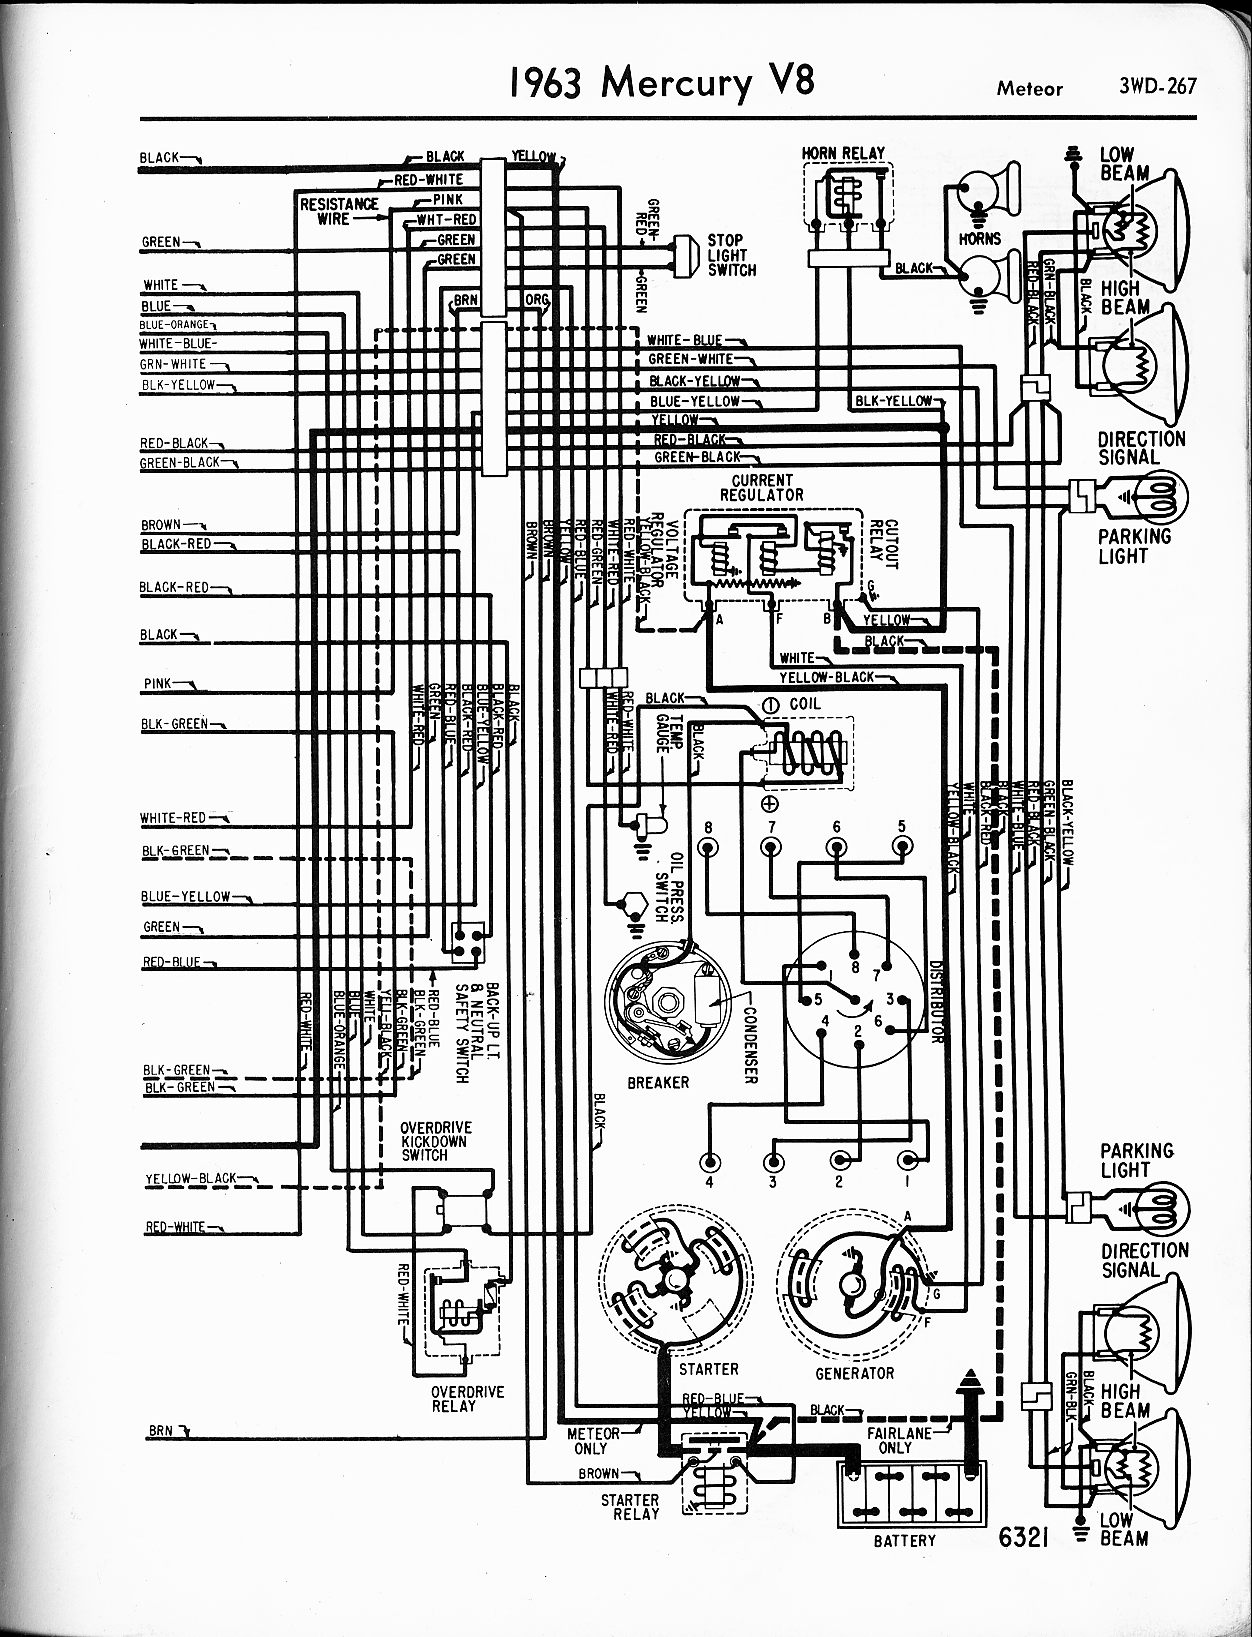 62 Impala Wiring Diagrams - Auto Electrical Wiring Diagram •